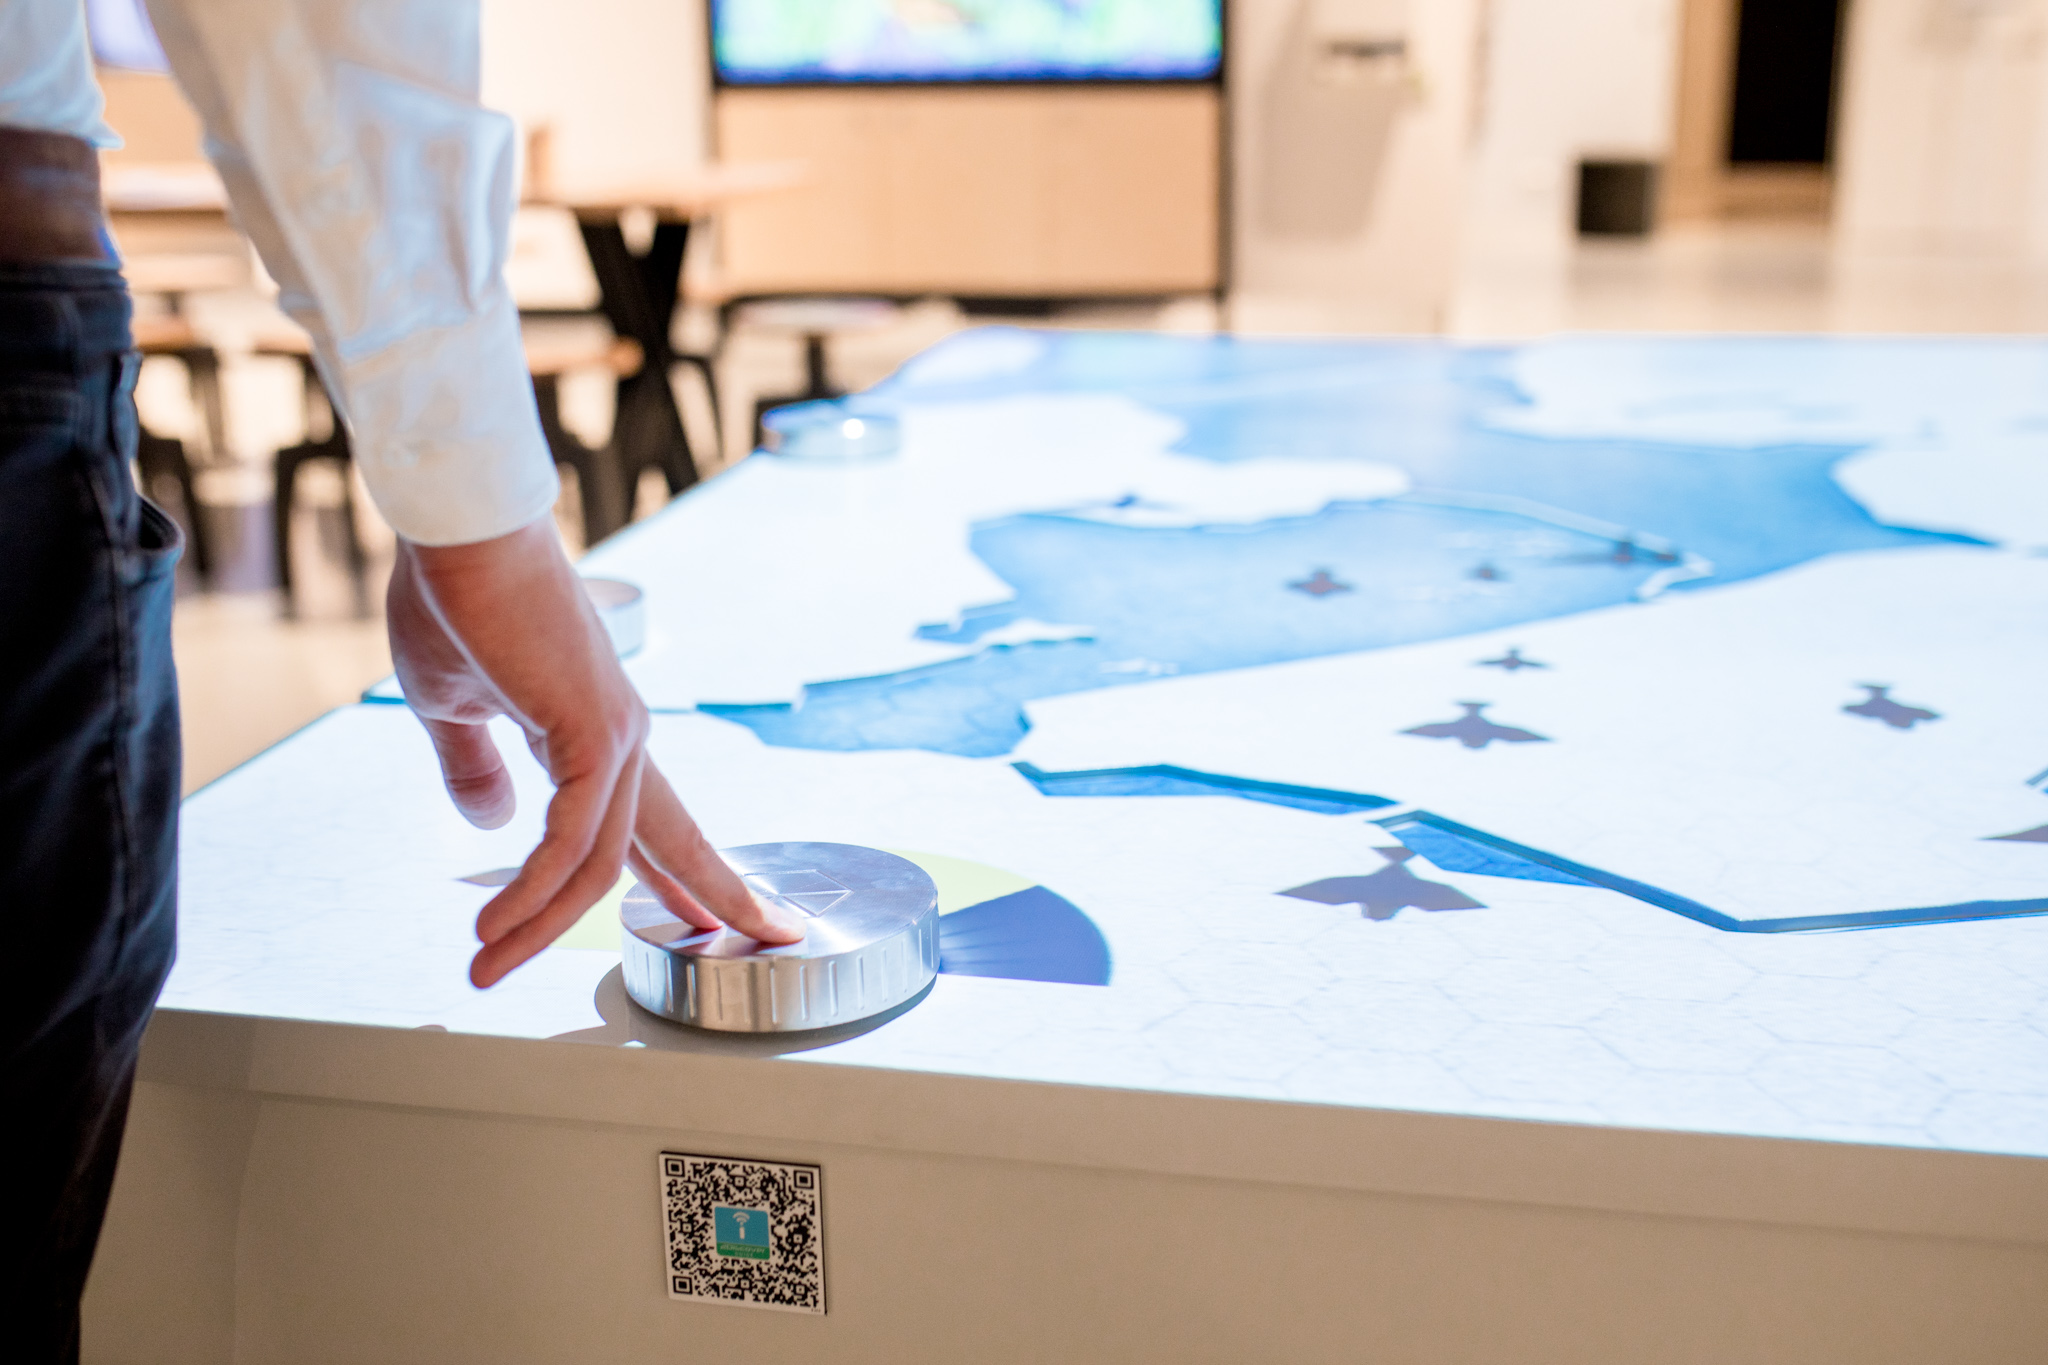 Afsluitdijk Wadden Center - IJsselmeer Interactive Table